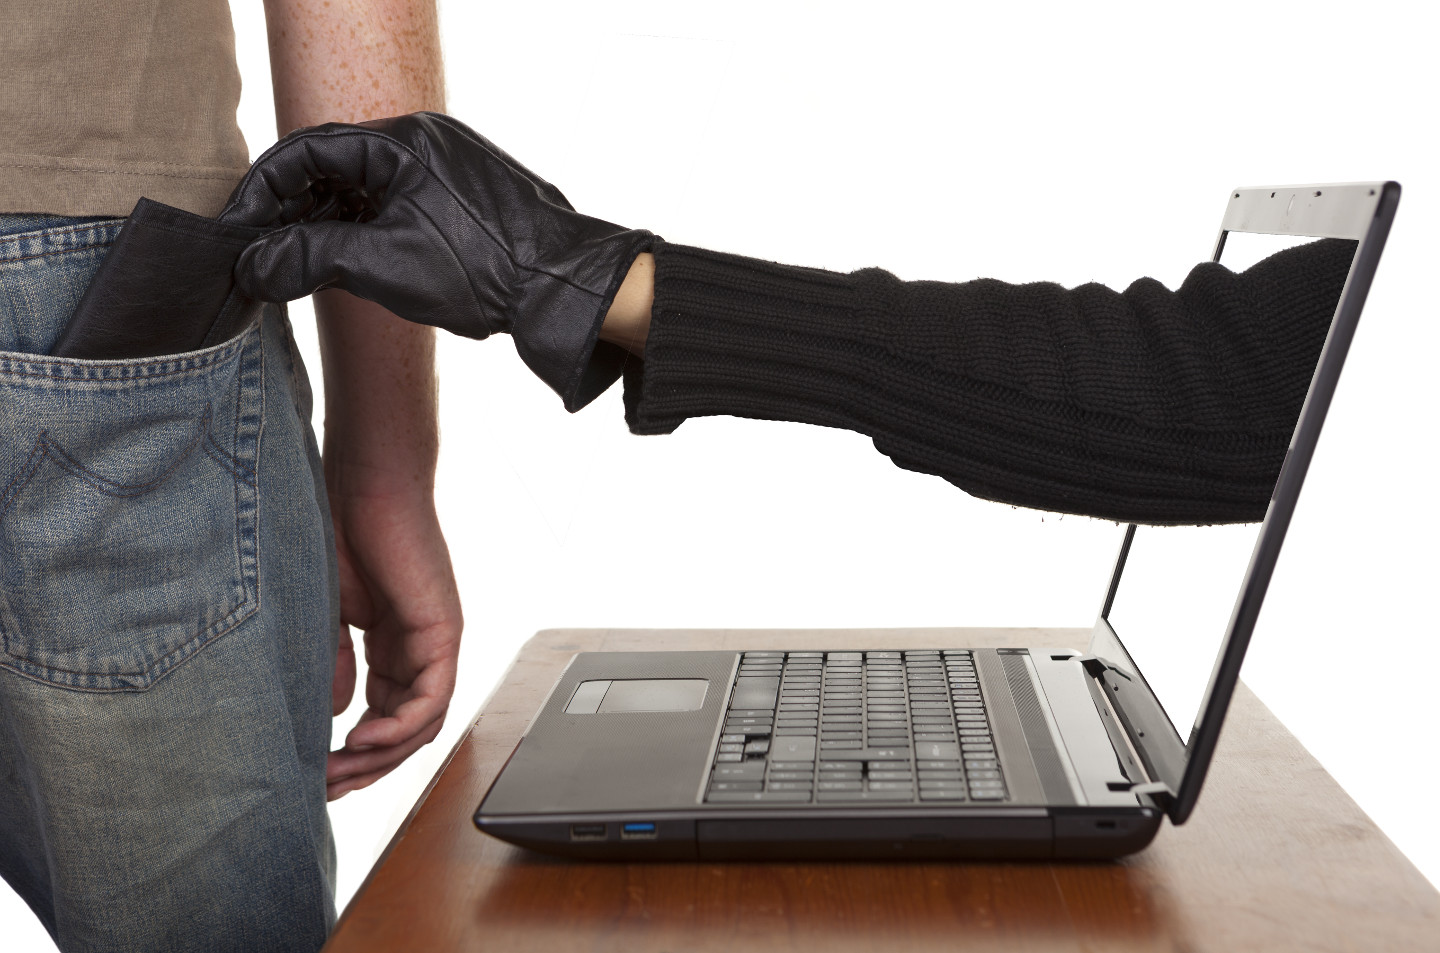 cybercrime and trust web skimming